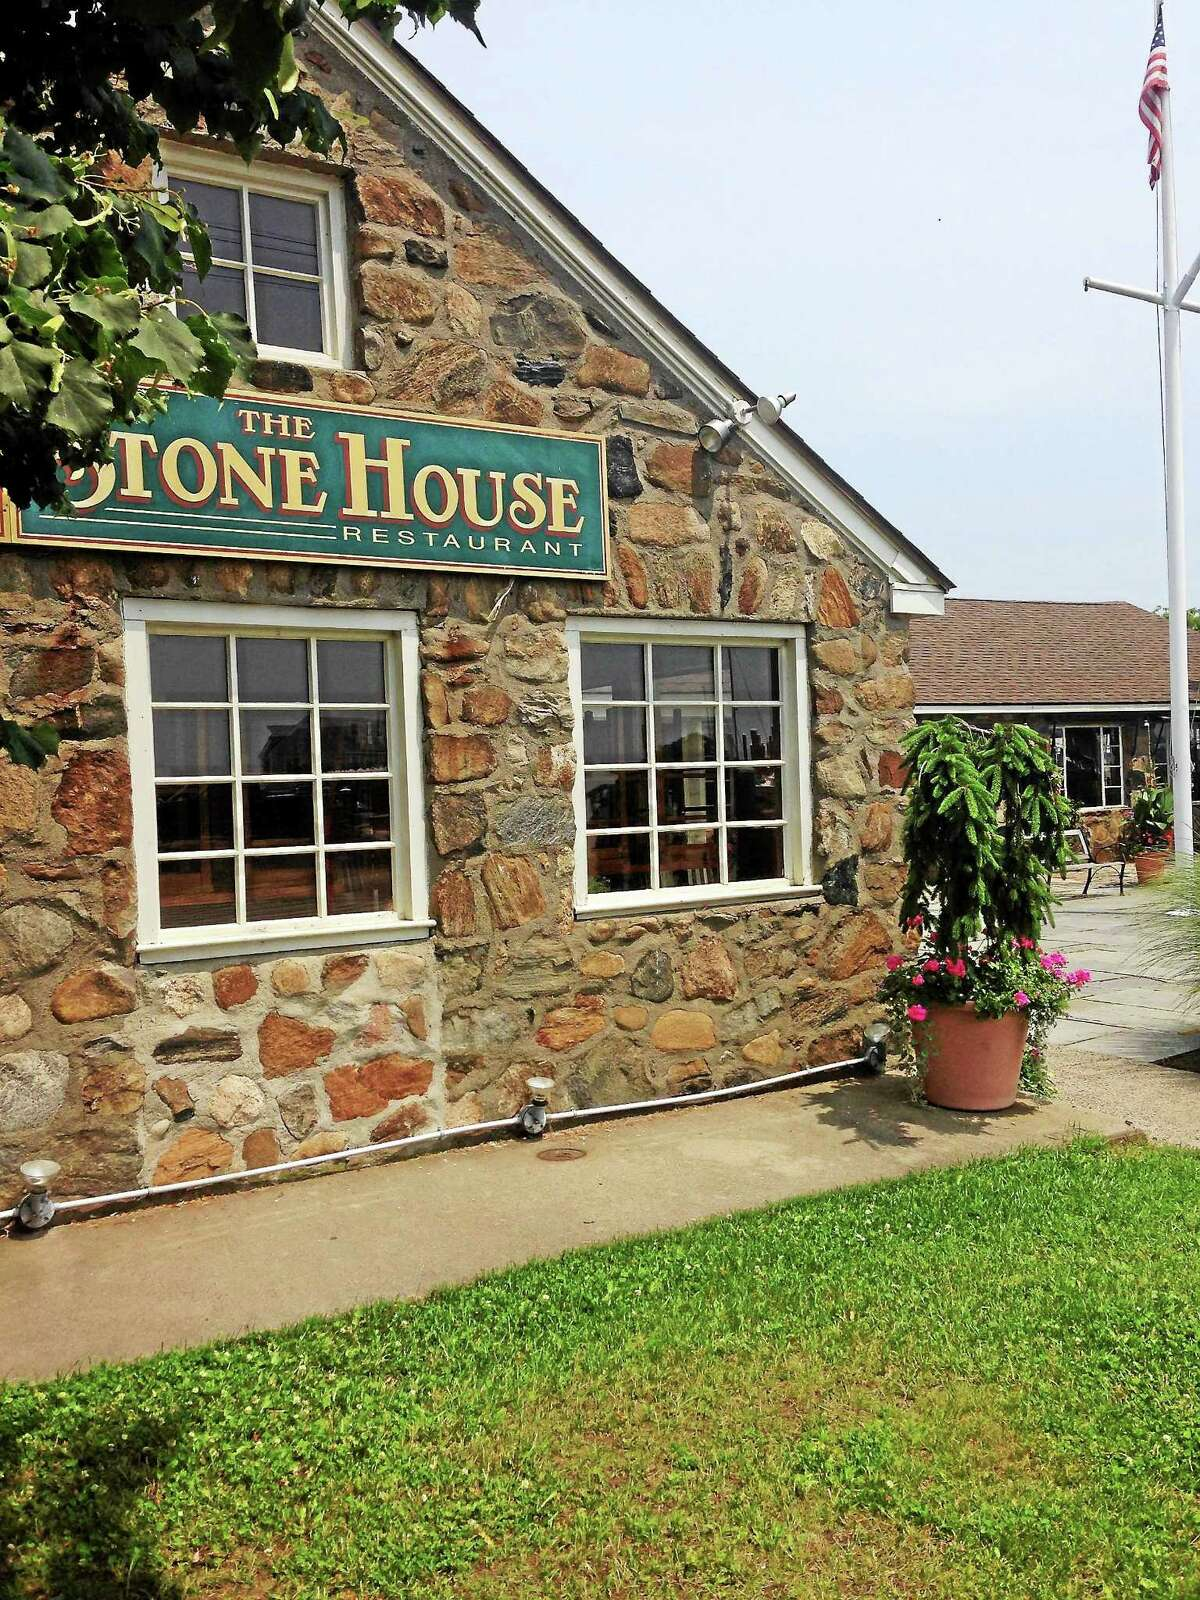 The Stone House Restaurant in Guilford will be closing its doors.